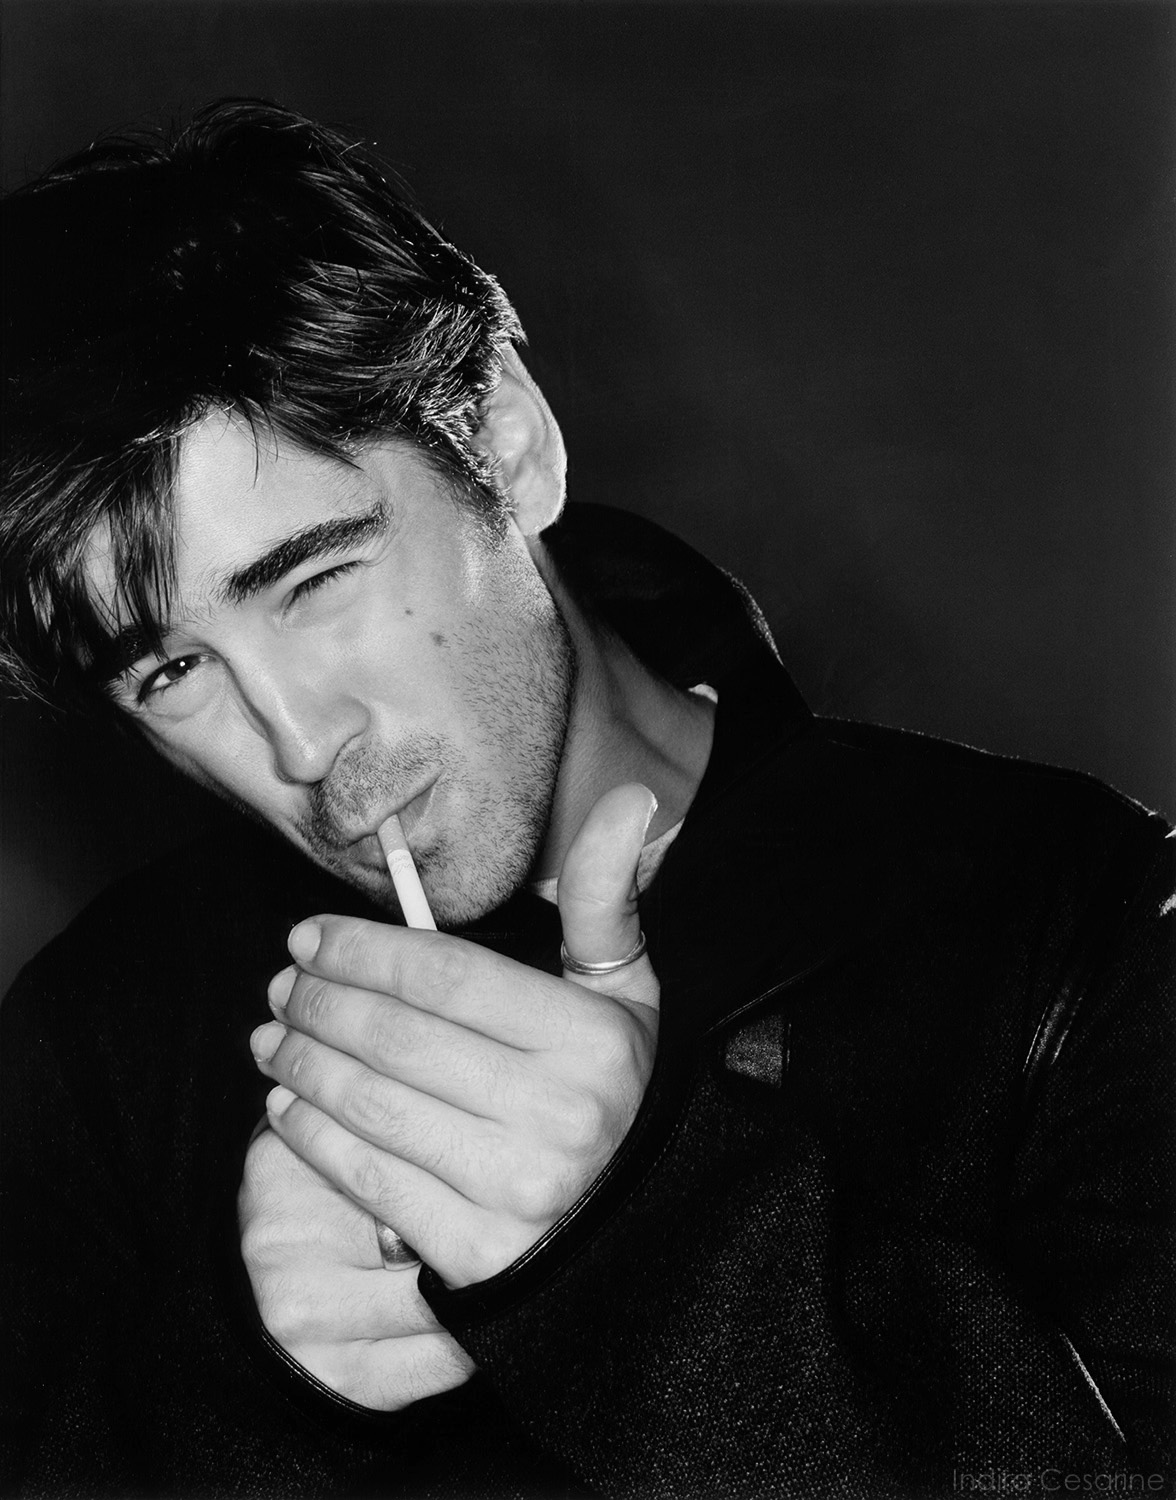 COLIN-FARRELL-Photography-by-Indira-Cesarine-001-BW-x.jpg